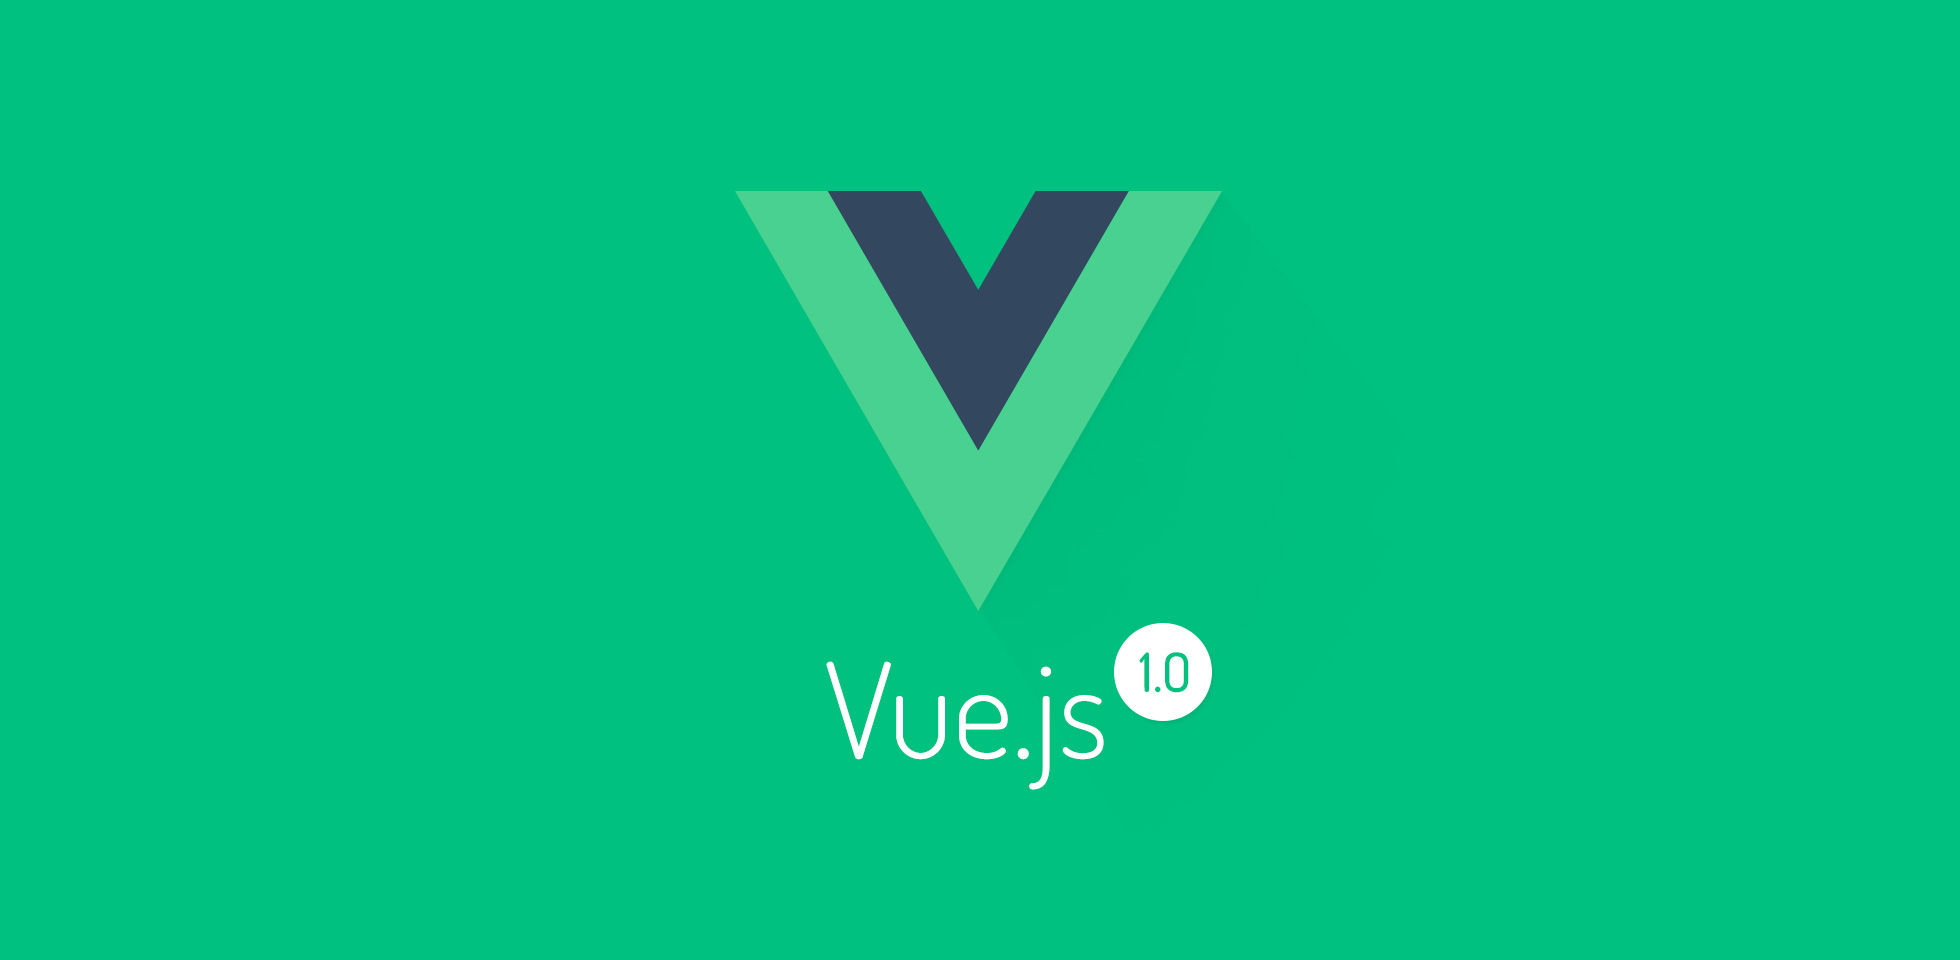 Pagekit updated to Vue.js 1.0